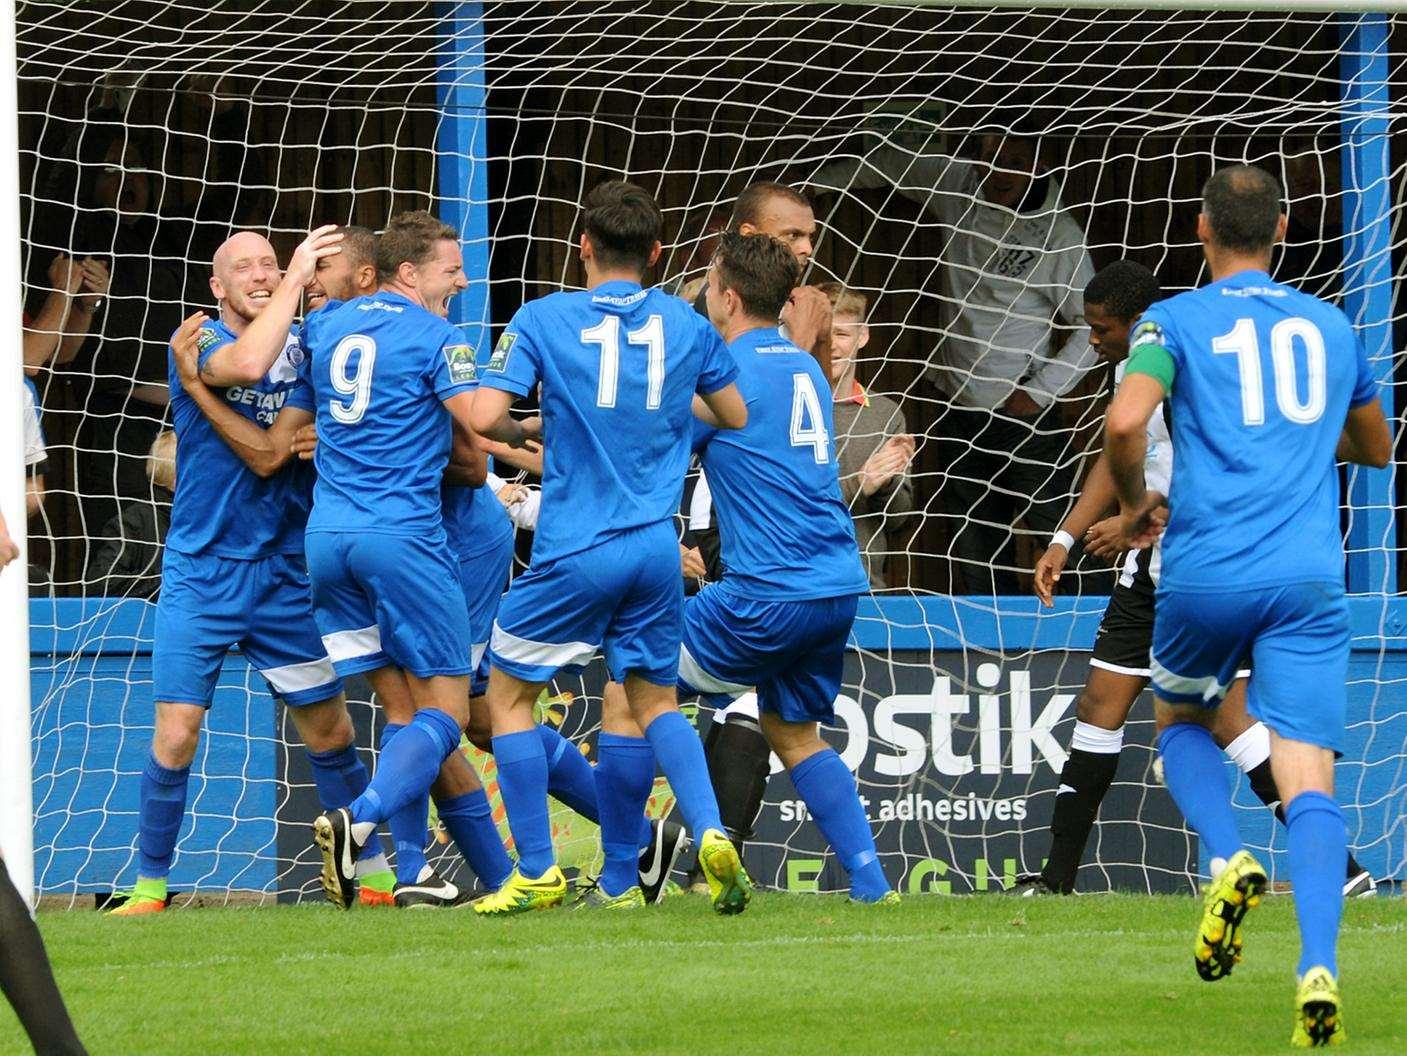 Bury Town players congratulate Leon Ottley-Gooch on putting the Blues 2-0 up against Tilbury Picture: Andy Abbott